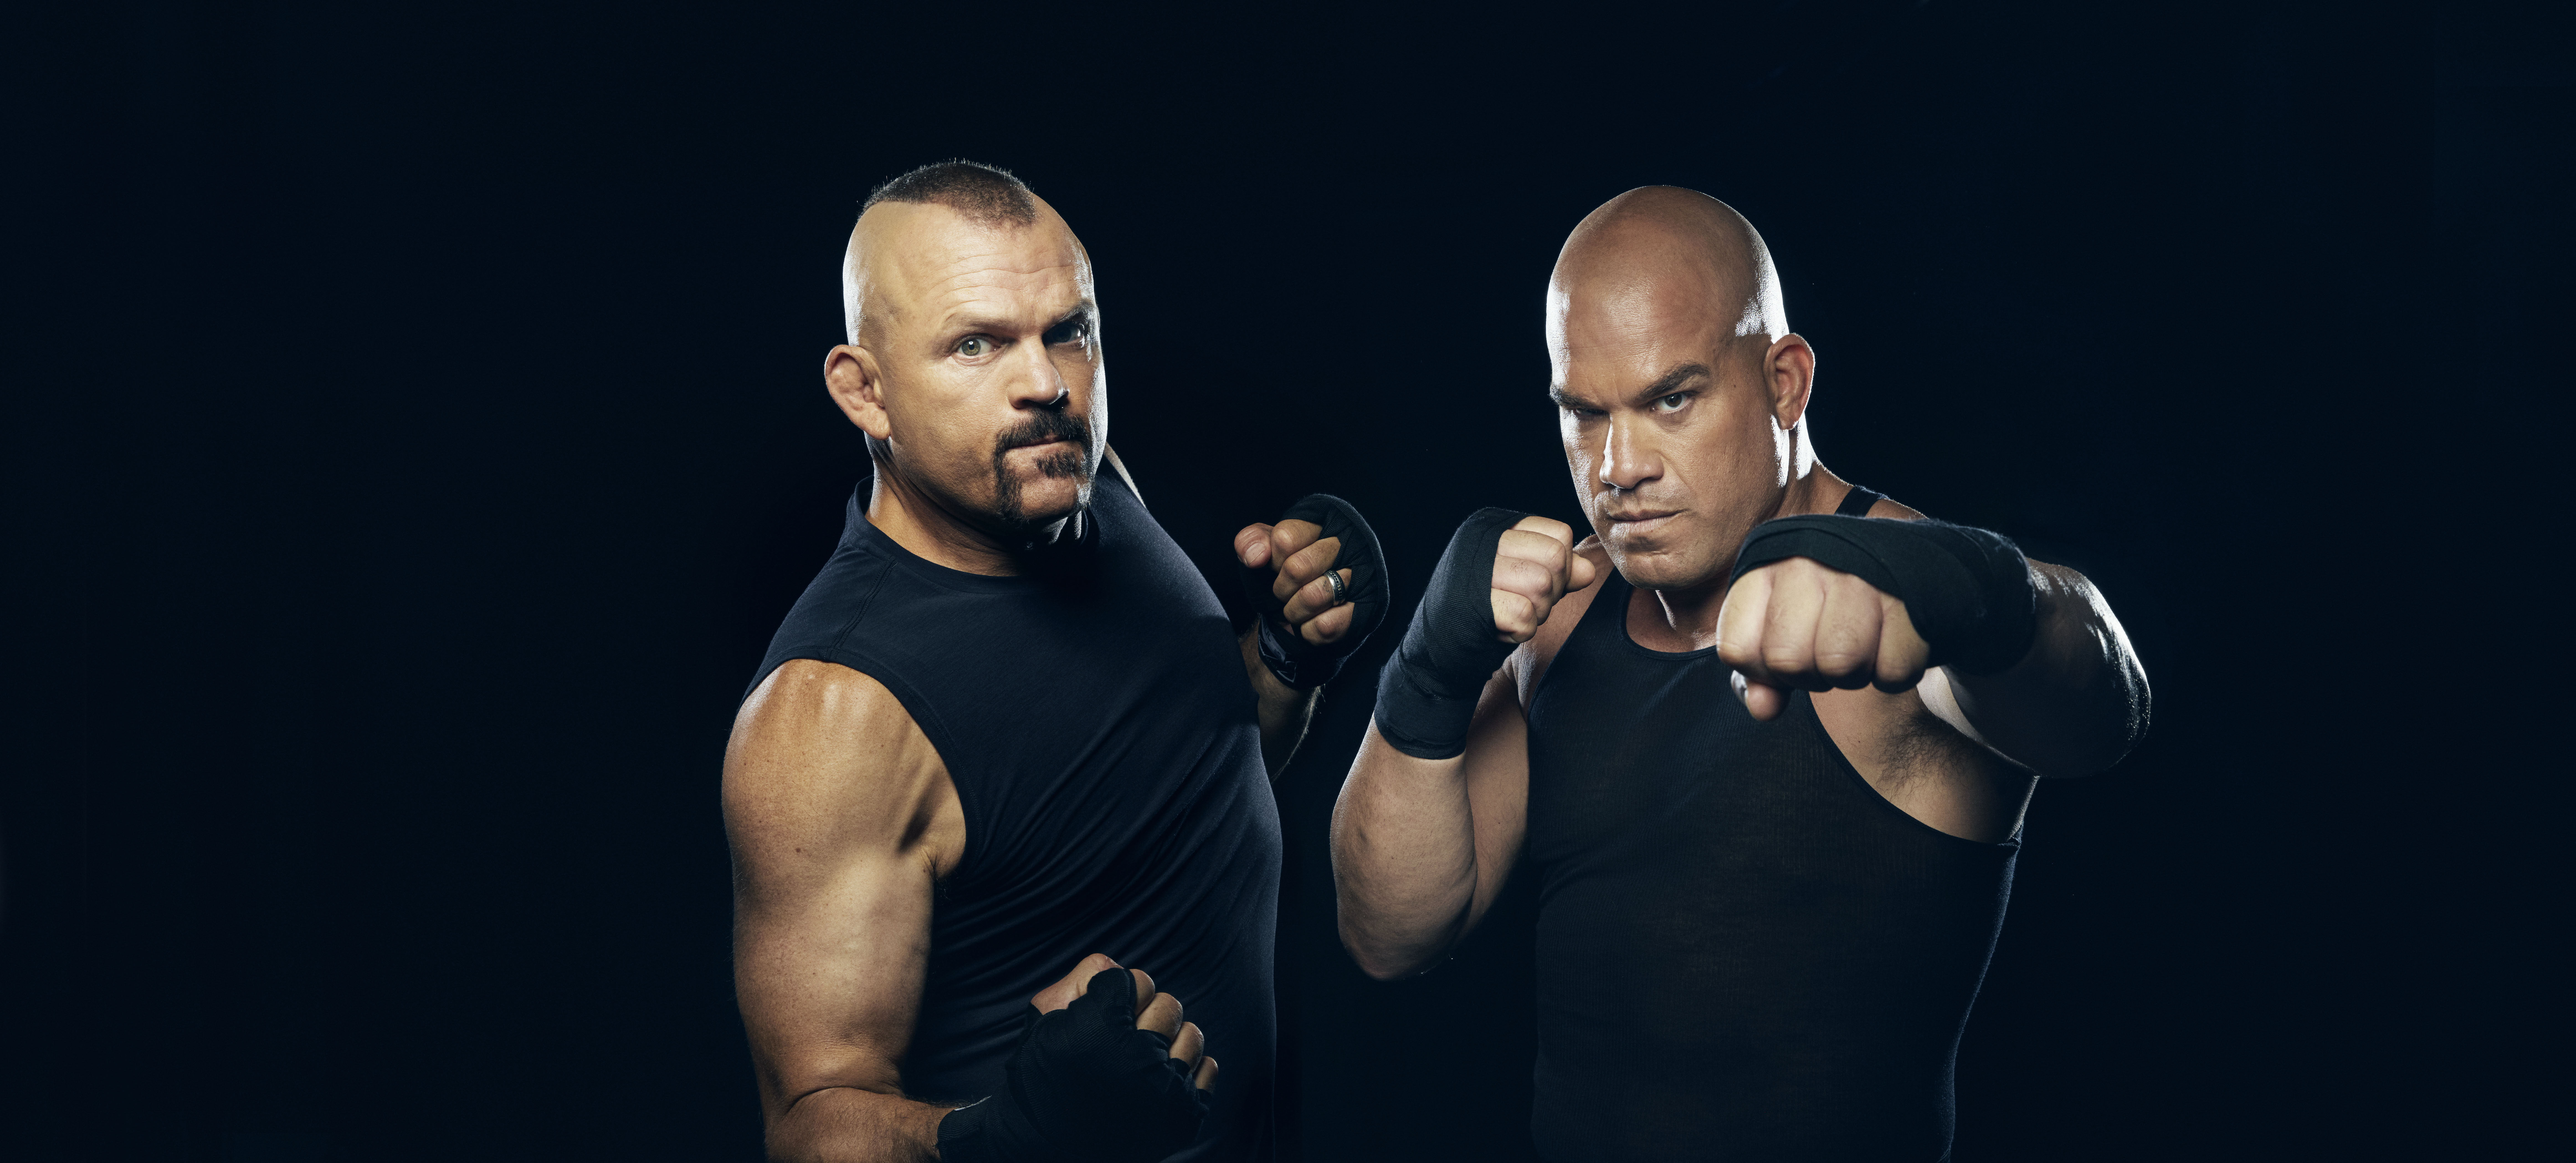 Photo of 30 for 30 Documentary on UFC Legends Chuck Liddell and Tito Ortiz Marks the Series' First to Cover the Sport of MMA